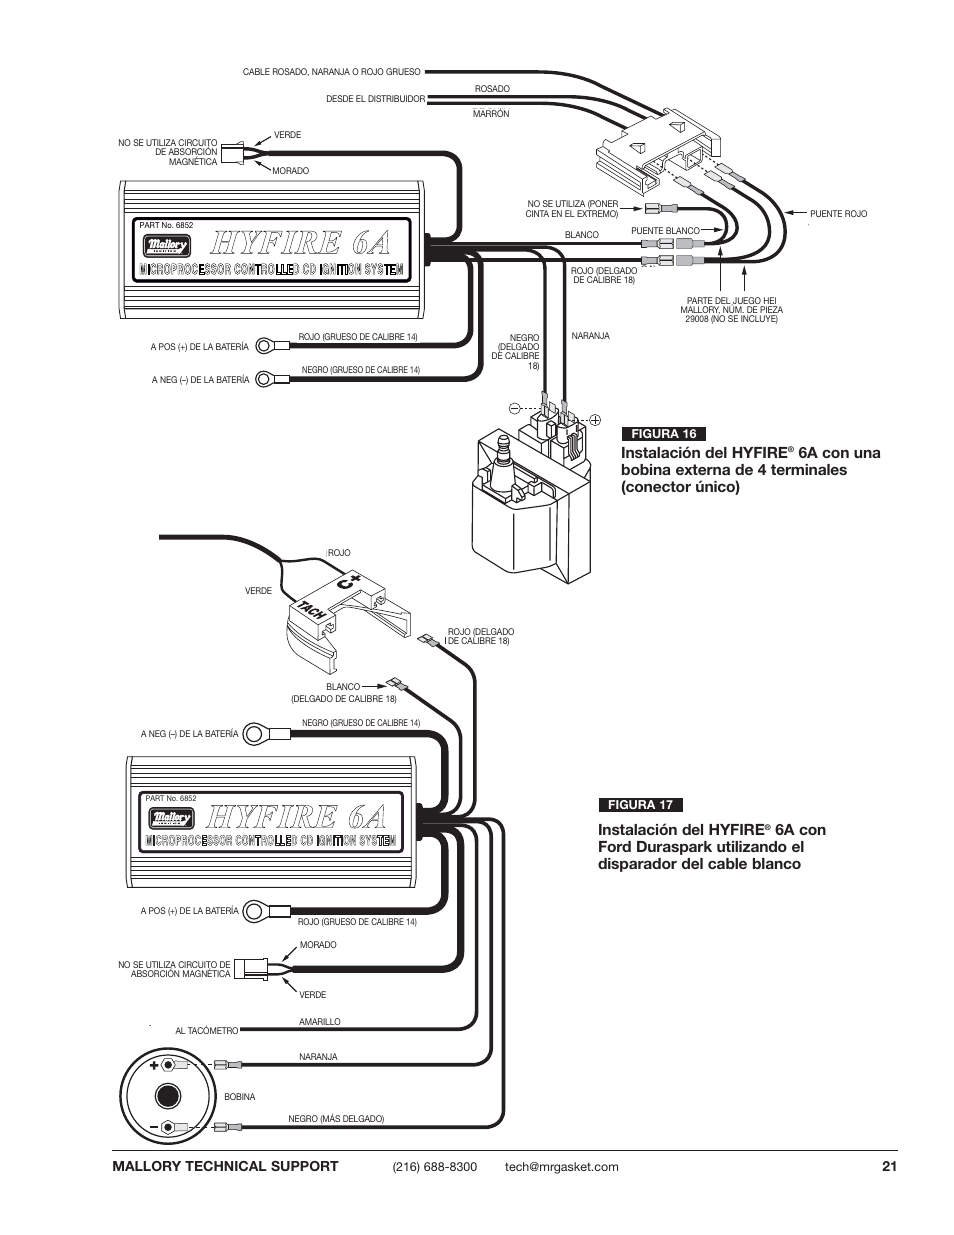 Mallory Ignition System Wiring Diagram